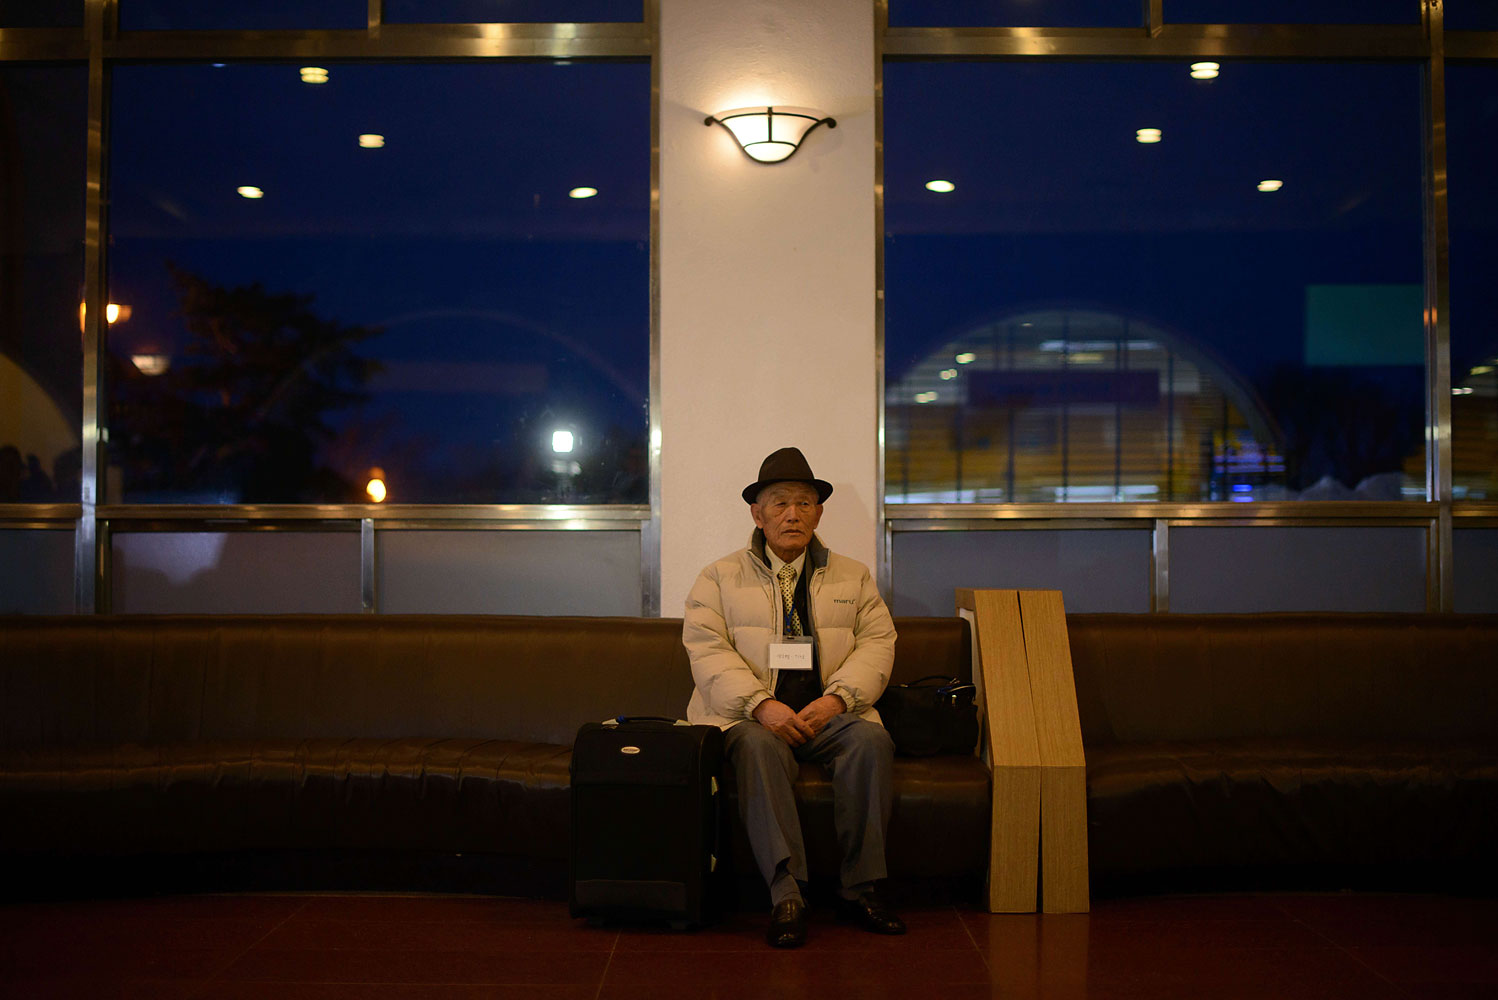 A South Korean man selected to attend joint North and South family reunions sits in the lobby of a hotel as he prepares to depart for the North Korean border, in the eastern port city of Sokcho on Feb. 20, 2014.